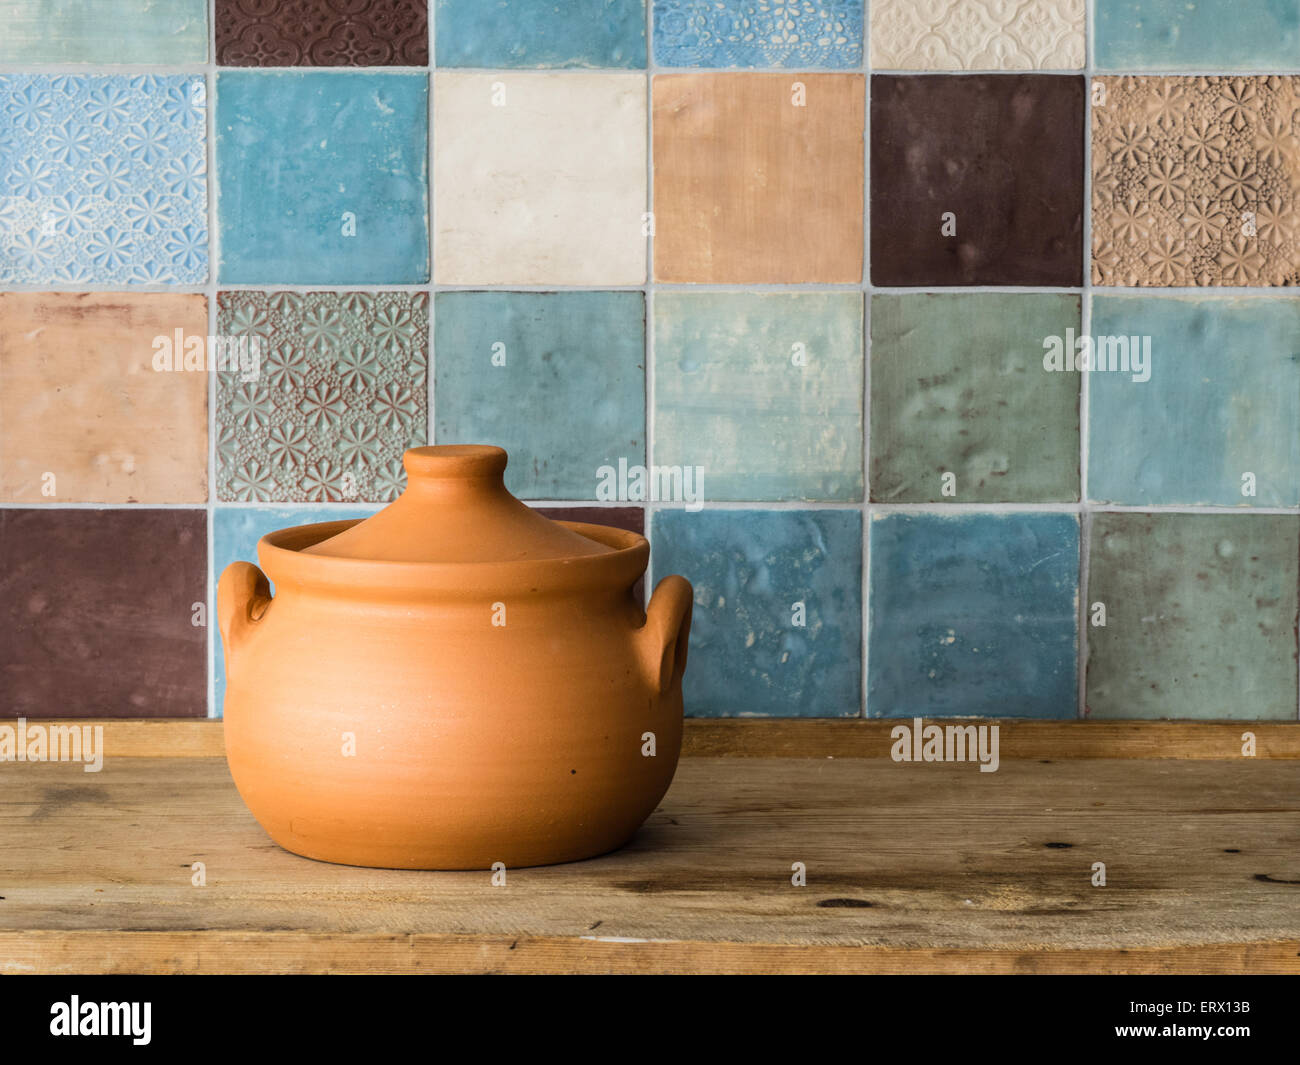 handmade ceramic pot in front of a colorful tiled wall in a countryside kitchen - Stock Image